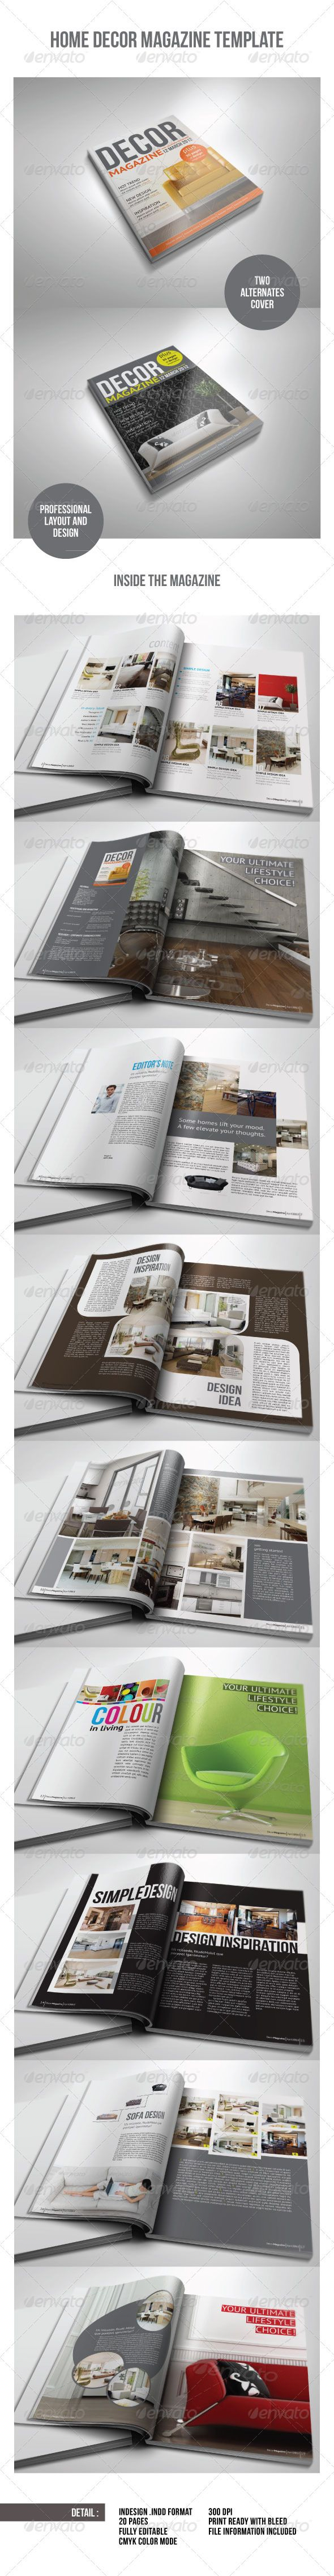 30 best Editorial/Magazine Template images on Pinterest | Magazine ...